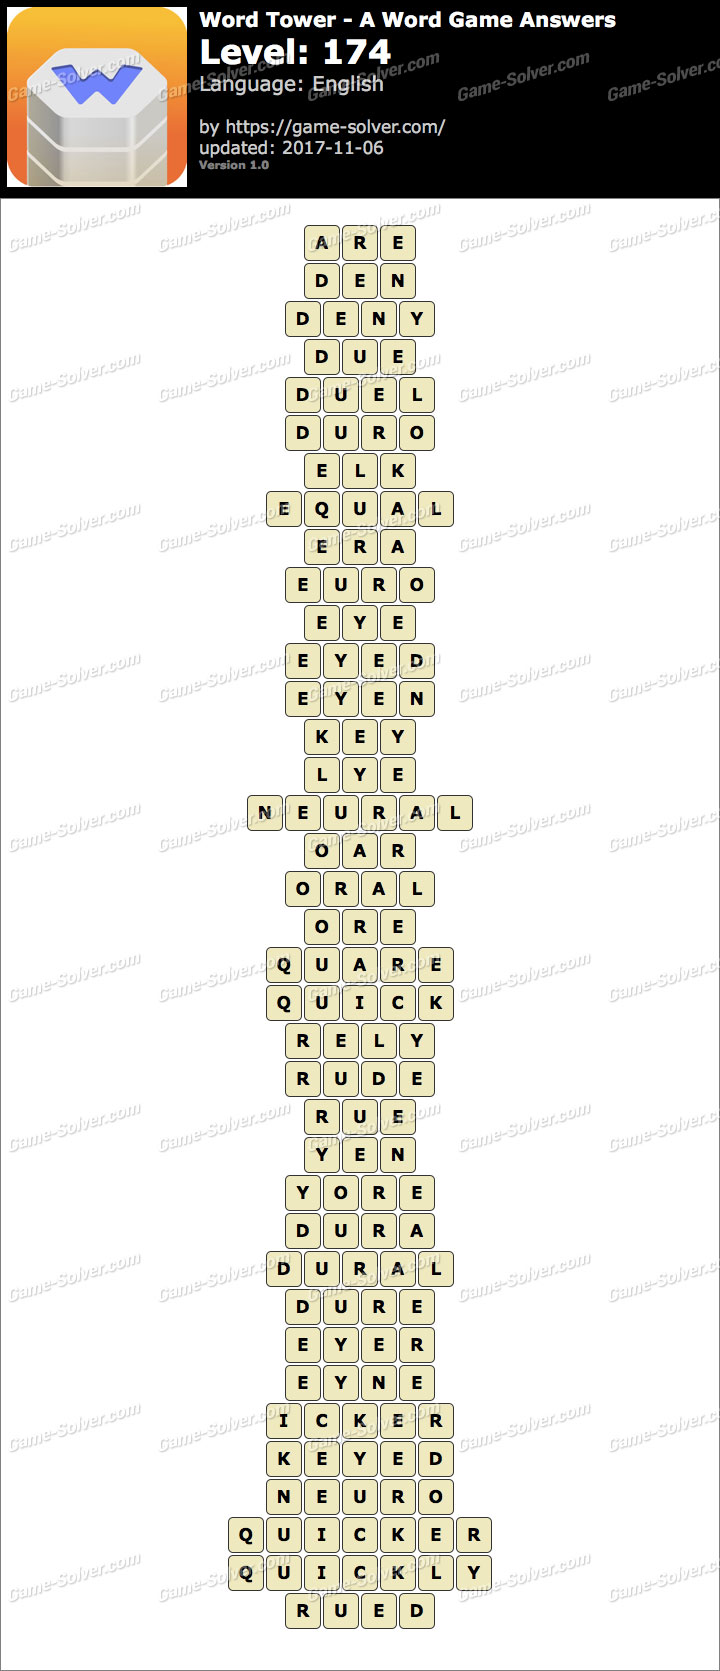 Word Tower Level 174 Answers